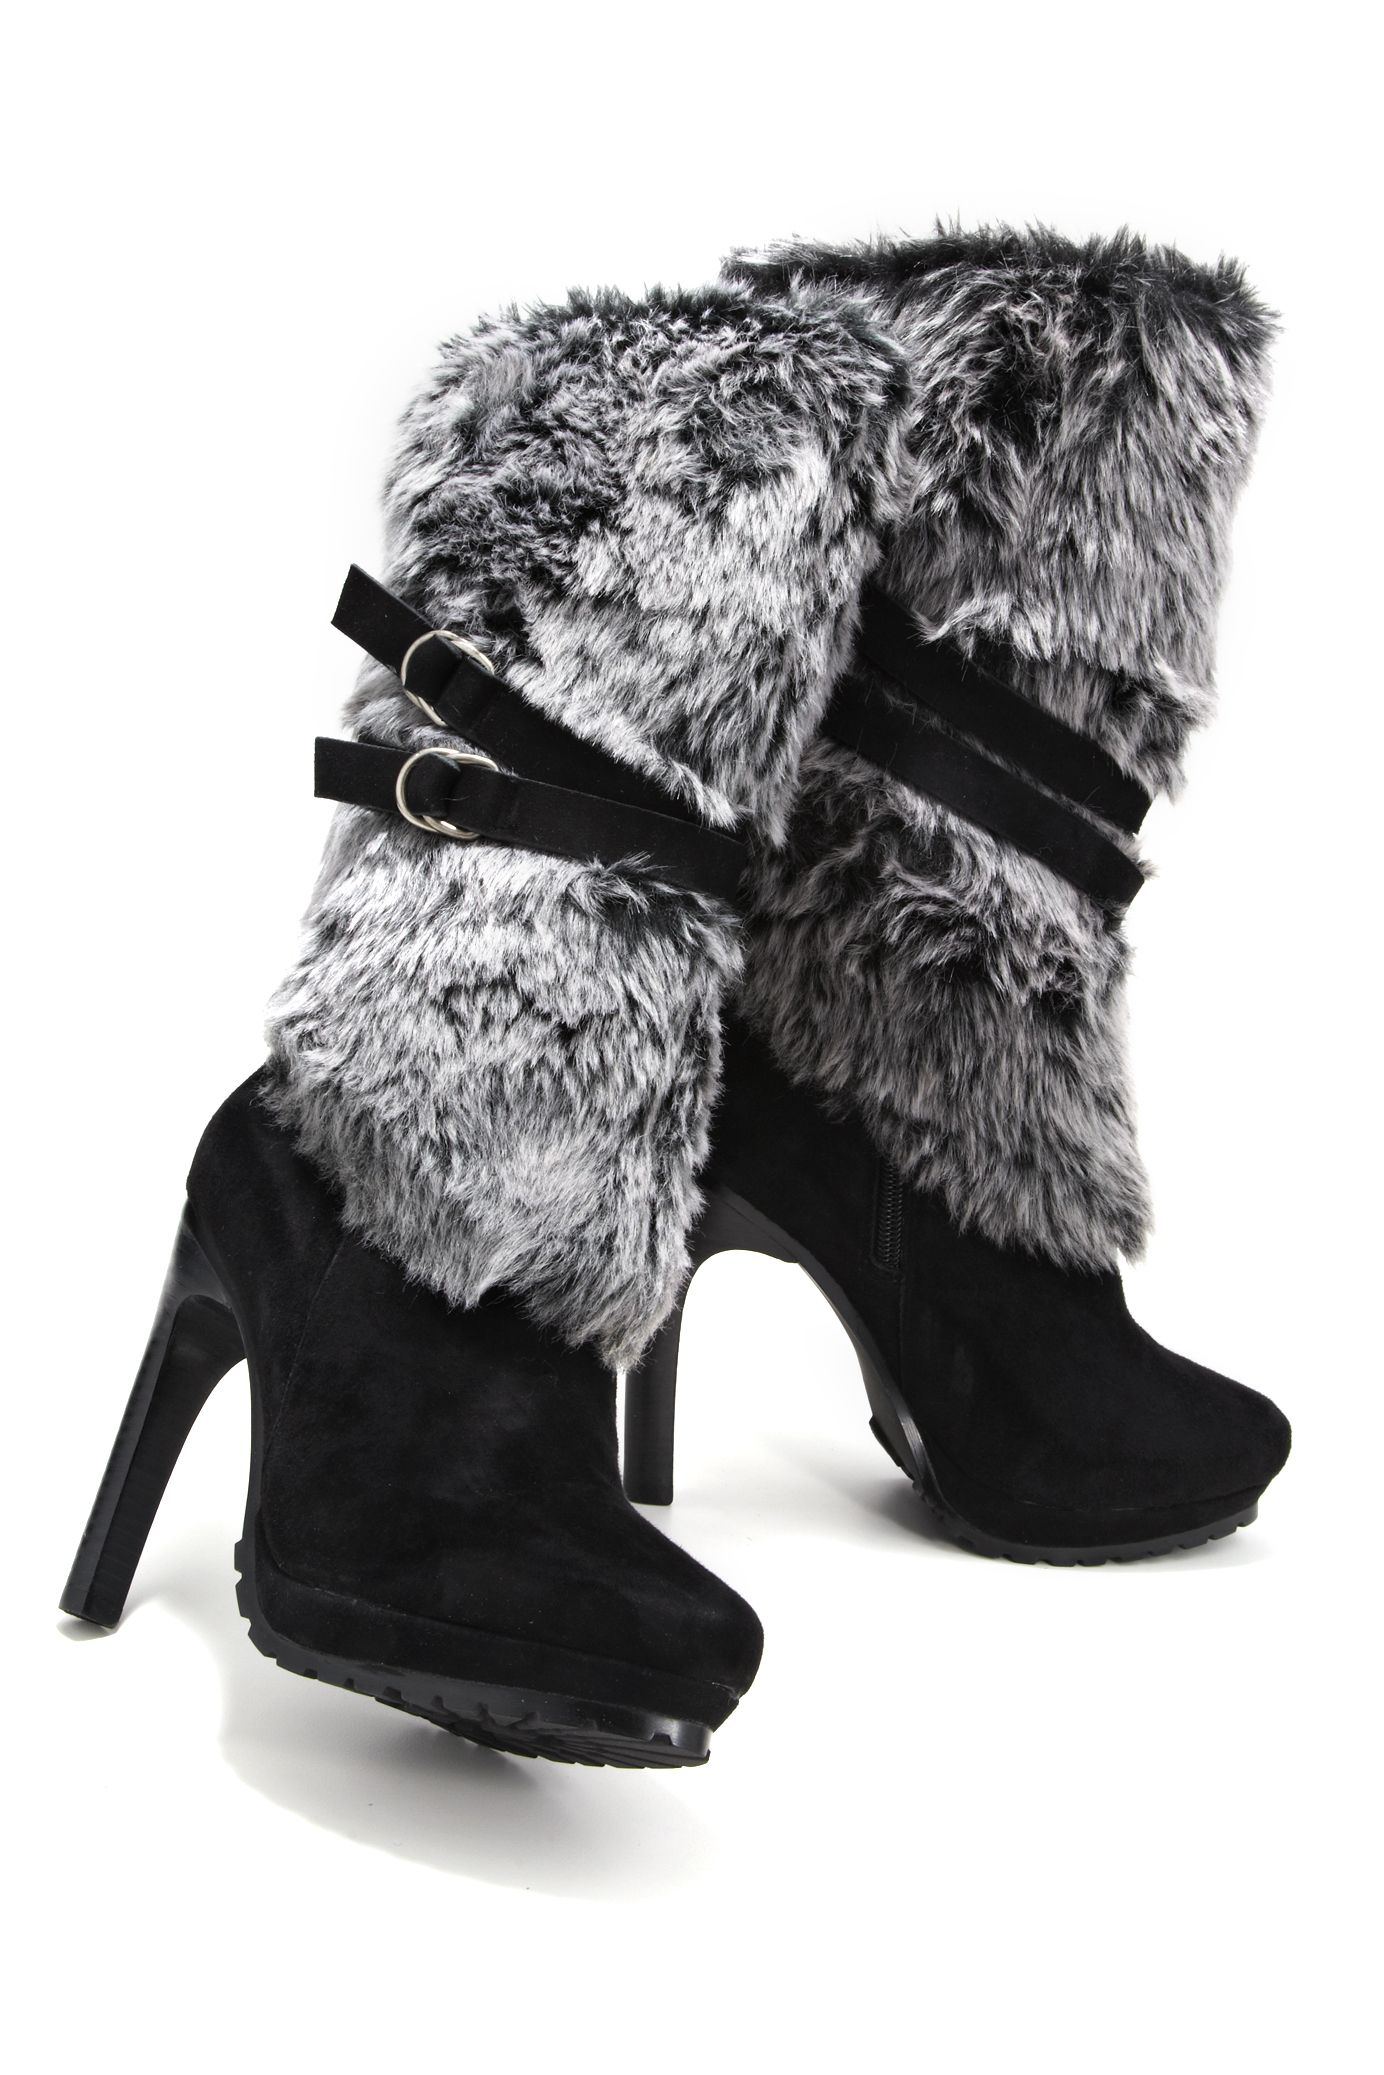 Shop the chic faux fur boot only at www.bostonproper.com ...